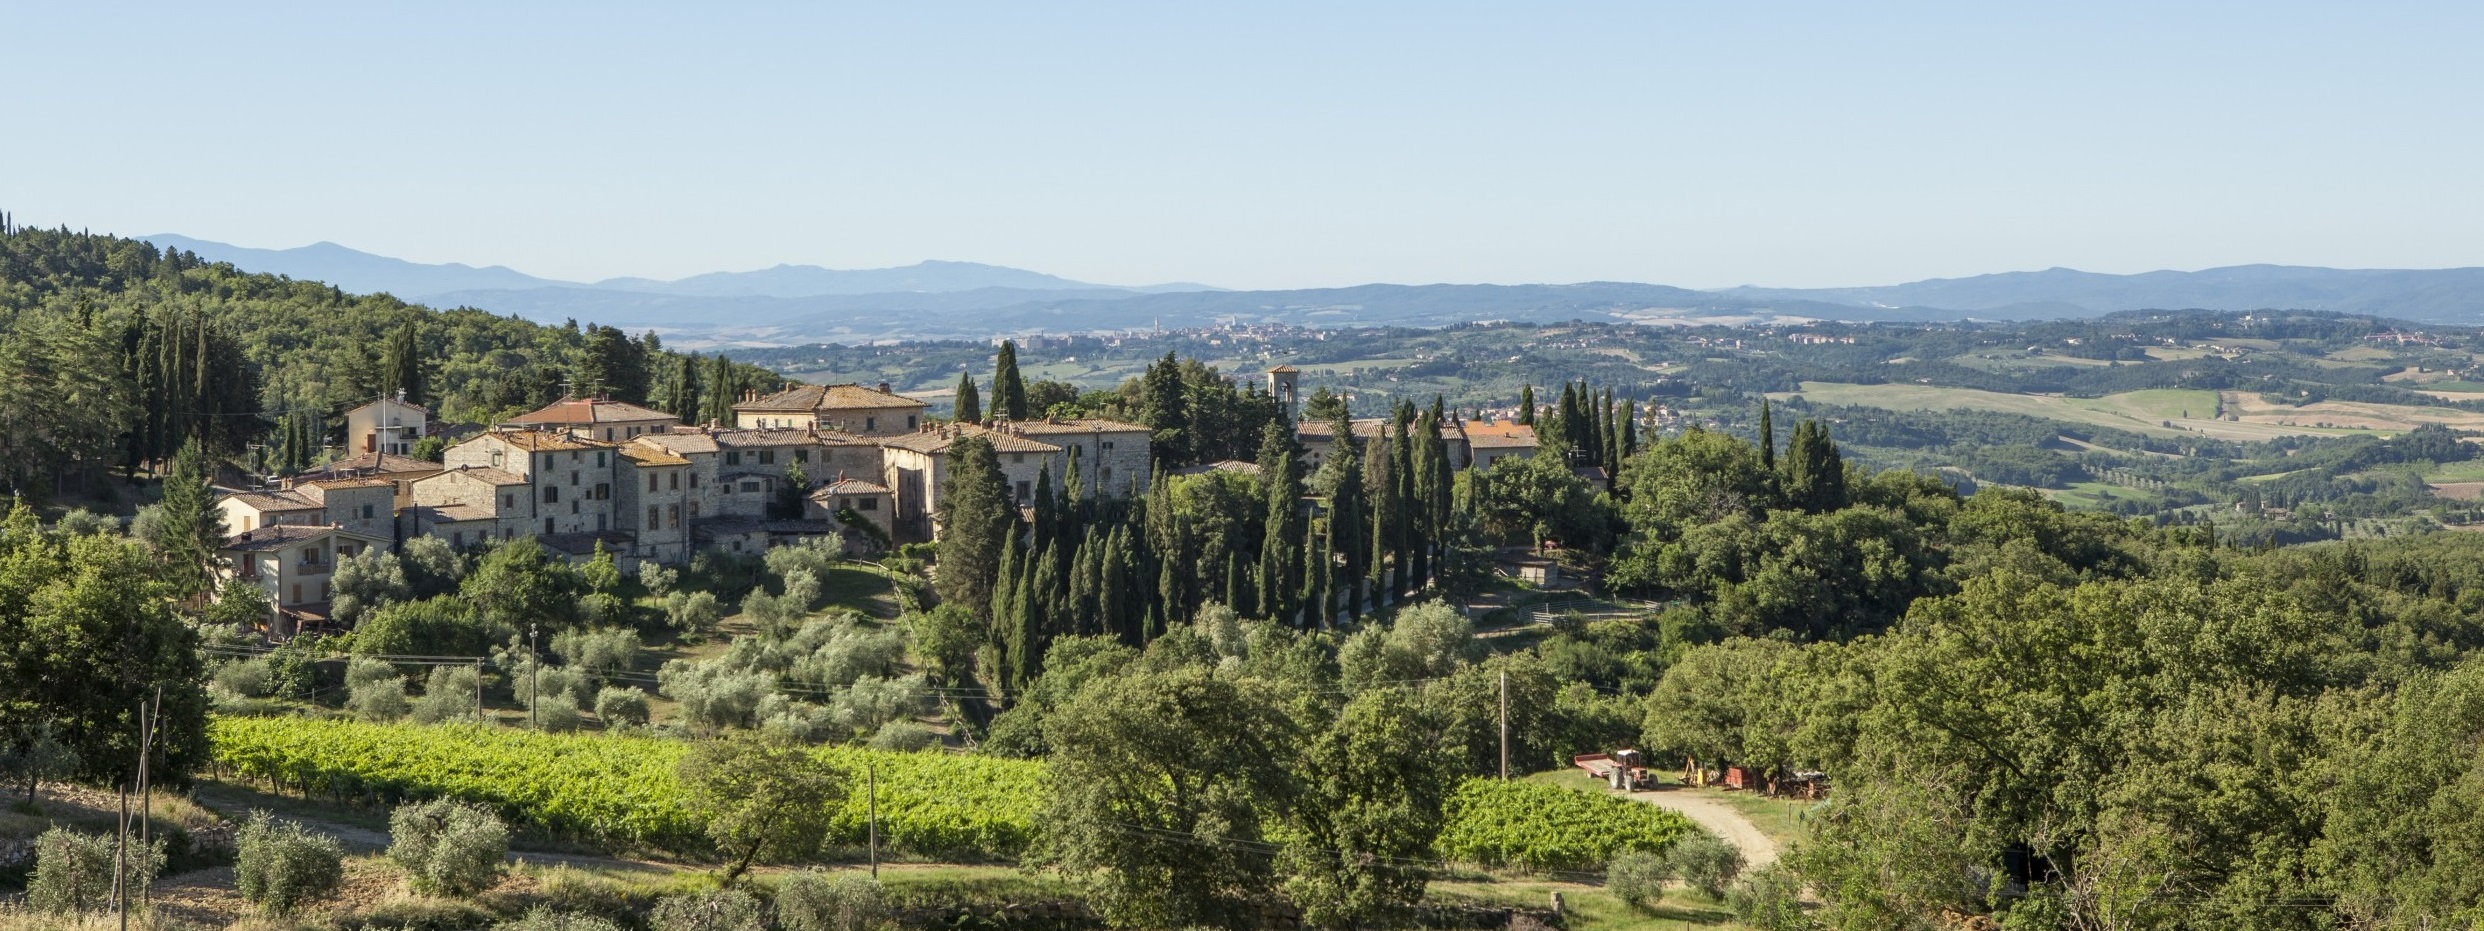 2019 Concerto di Fonterutoli - the finest vintage yet of an authentic Super Tuscan